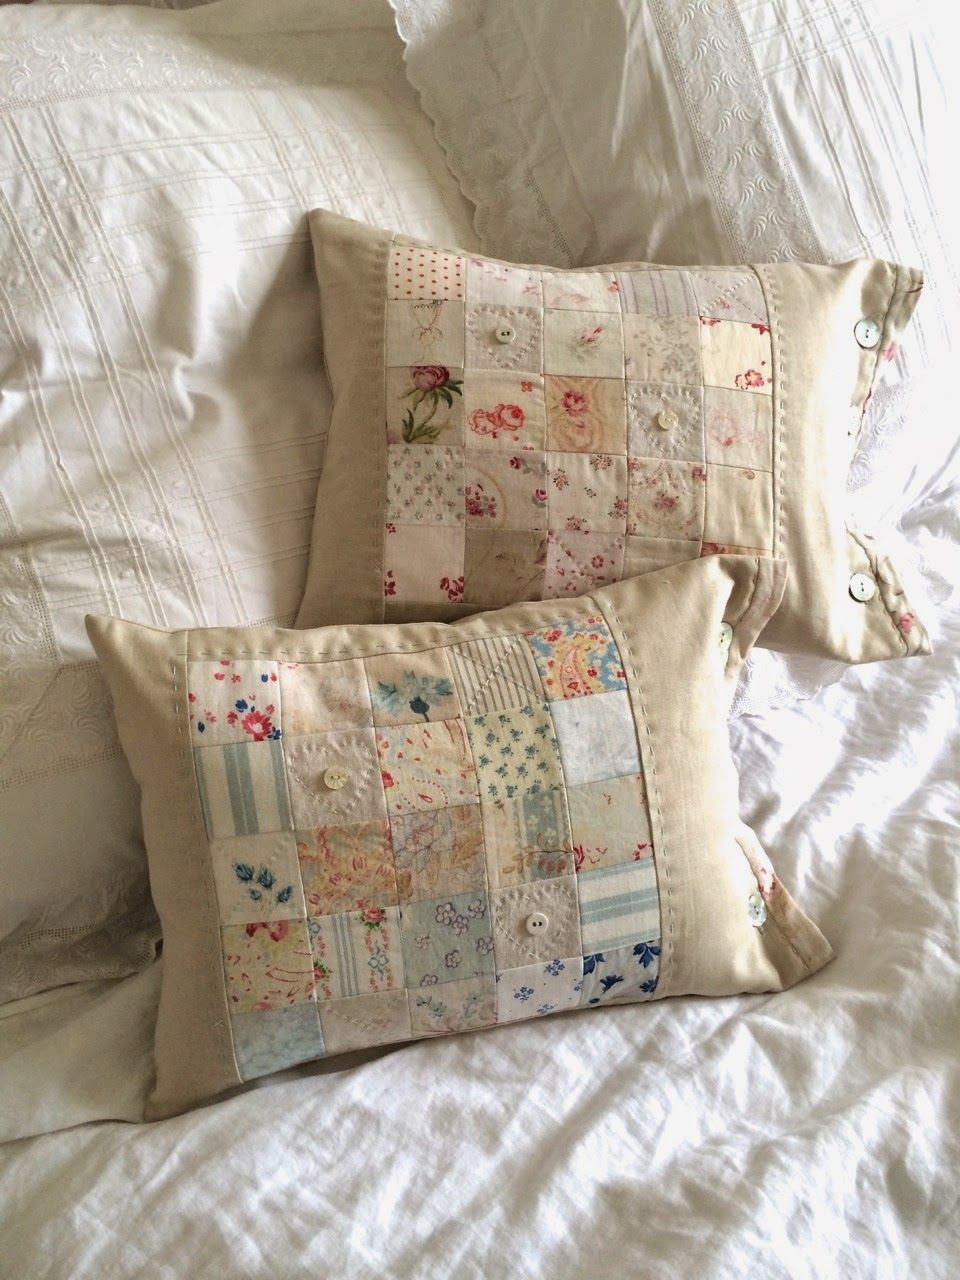 henhouse spring has sprung patchwork kleinigkeiten pinterest n hen kissen n hen und kissen. Black Bedroom Furniture Sets. Home Design Ideas